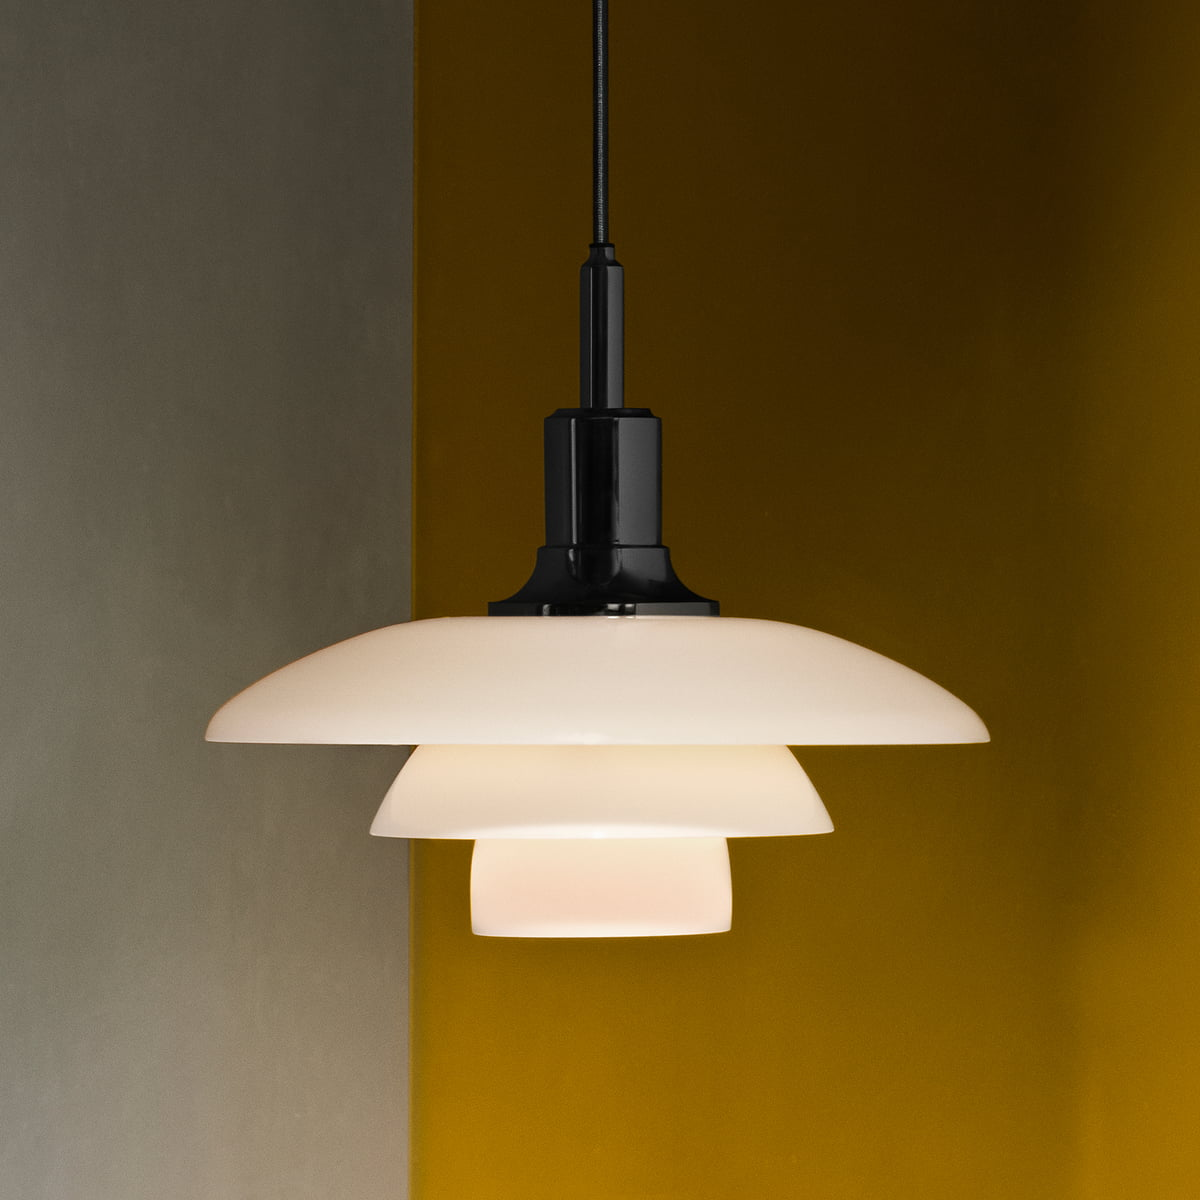 ph 3 pendant lamp by louis poulsen. Black Bedroom Furniture Sets. Home Design Ideas